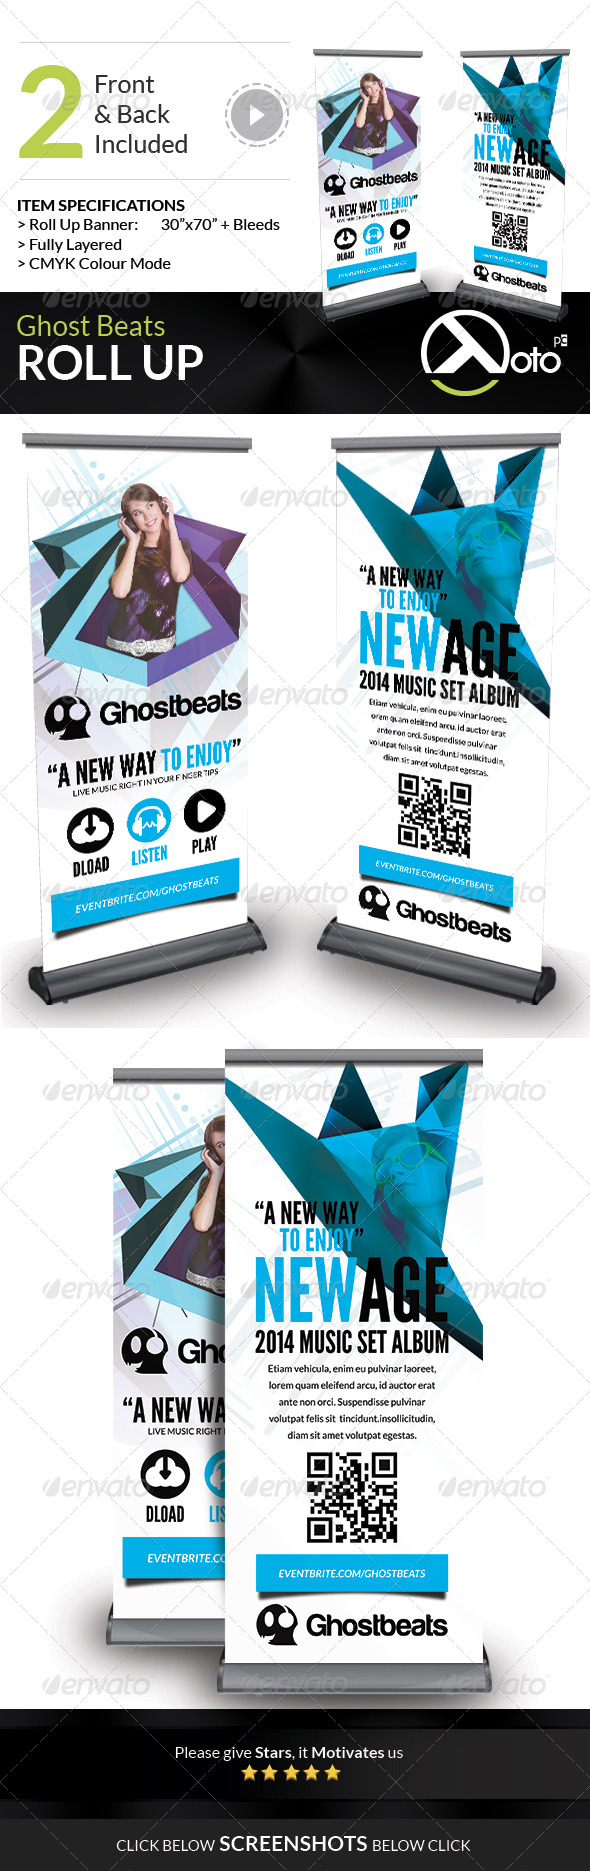 GraphicRiver Ghost Beats Music Downloads Roll Up 7666081